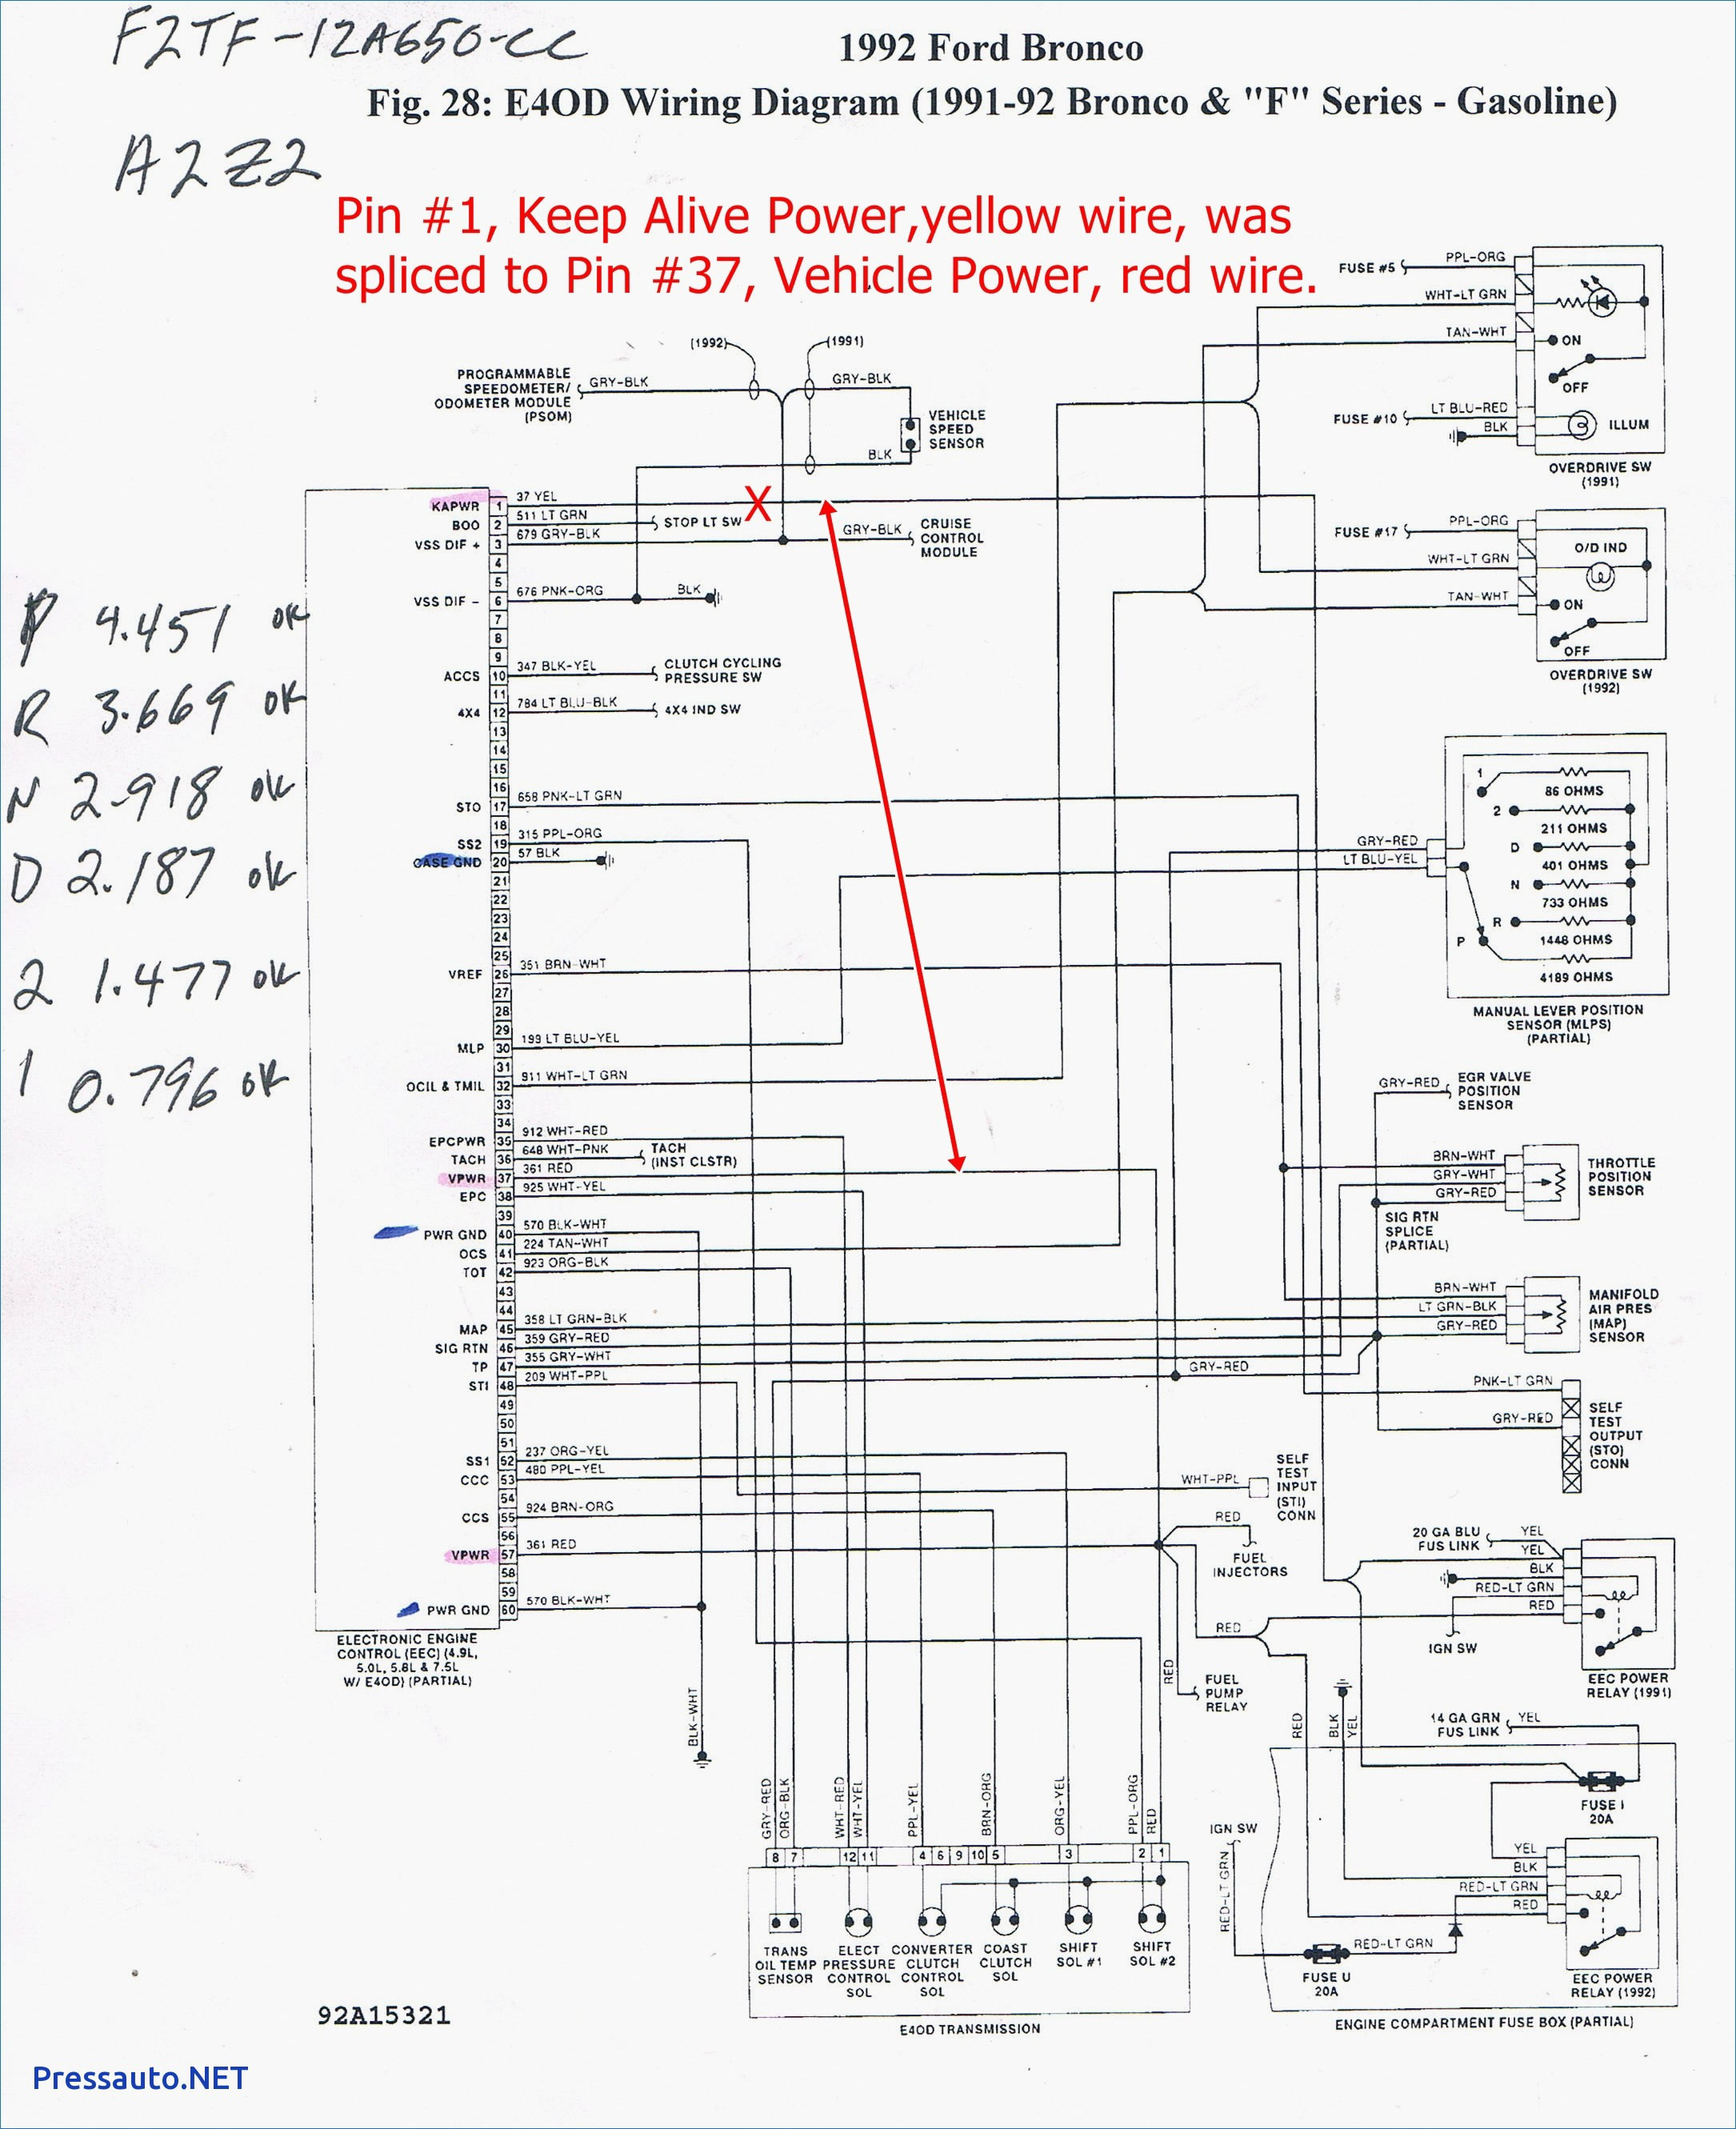 get ford f550 pto wiring diagram download isuzu frr 550 wiring diagram